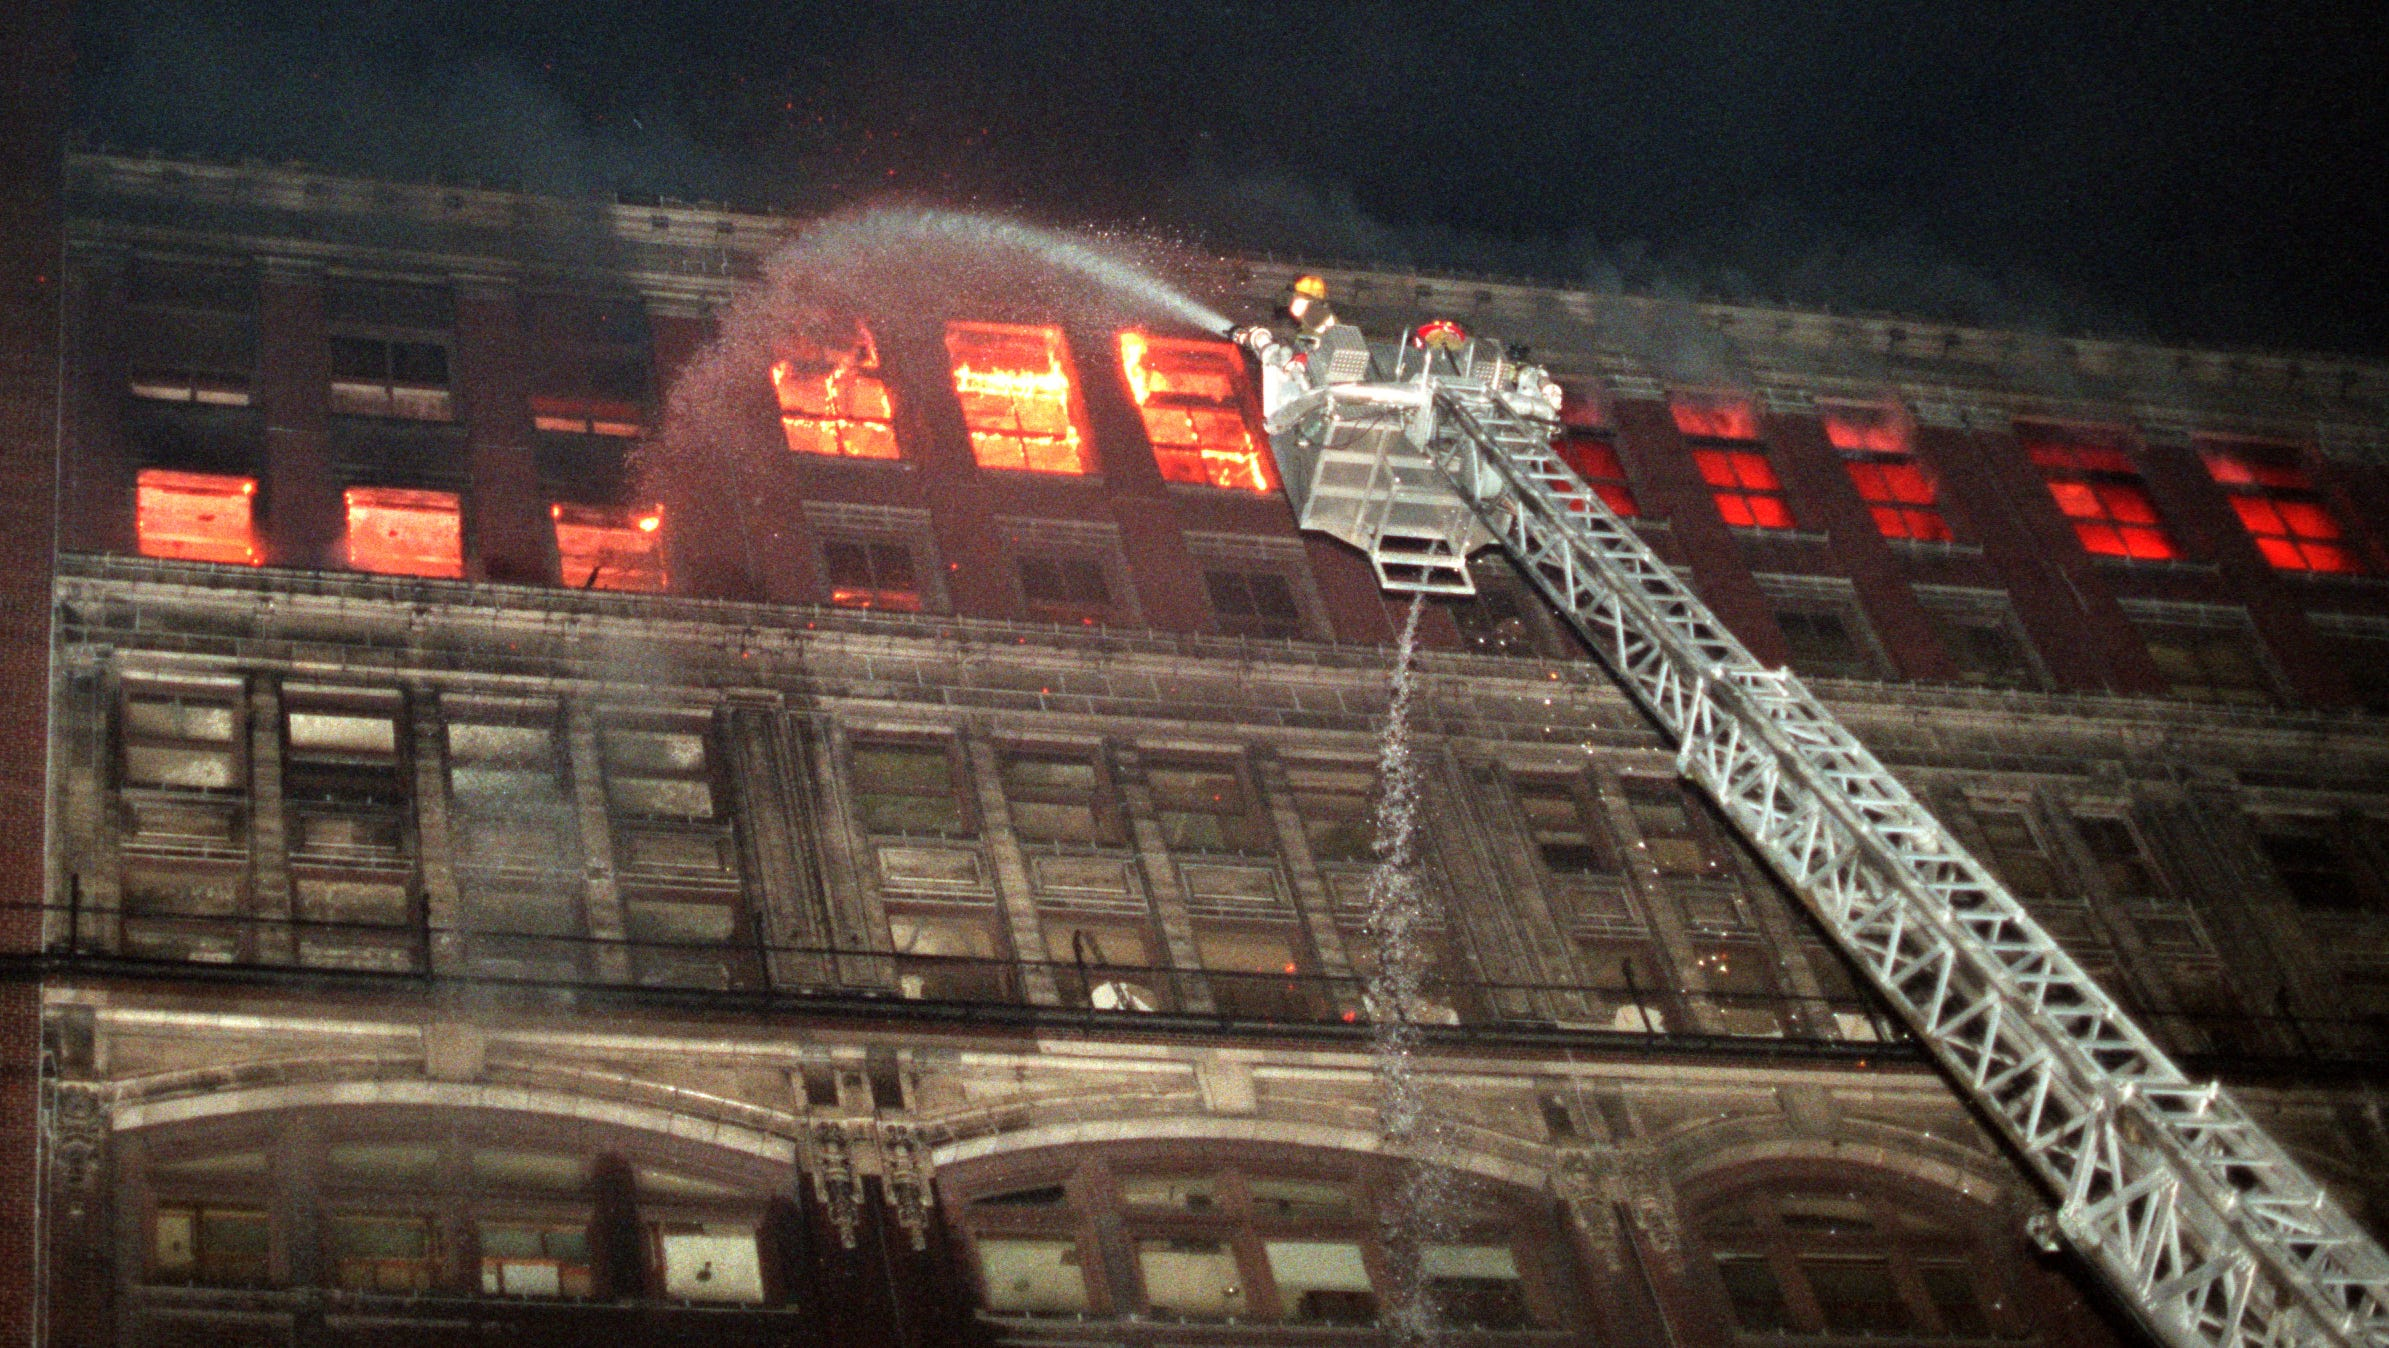 Early Friday morning around 1:15 a.m. Detroit Fire Department responded to a second alarm fire at the old Hudson's building on Woodward Ave.